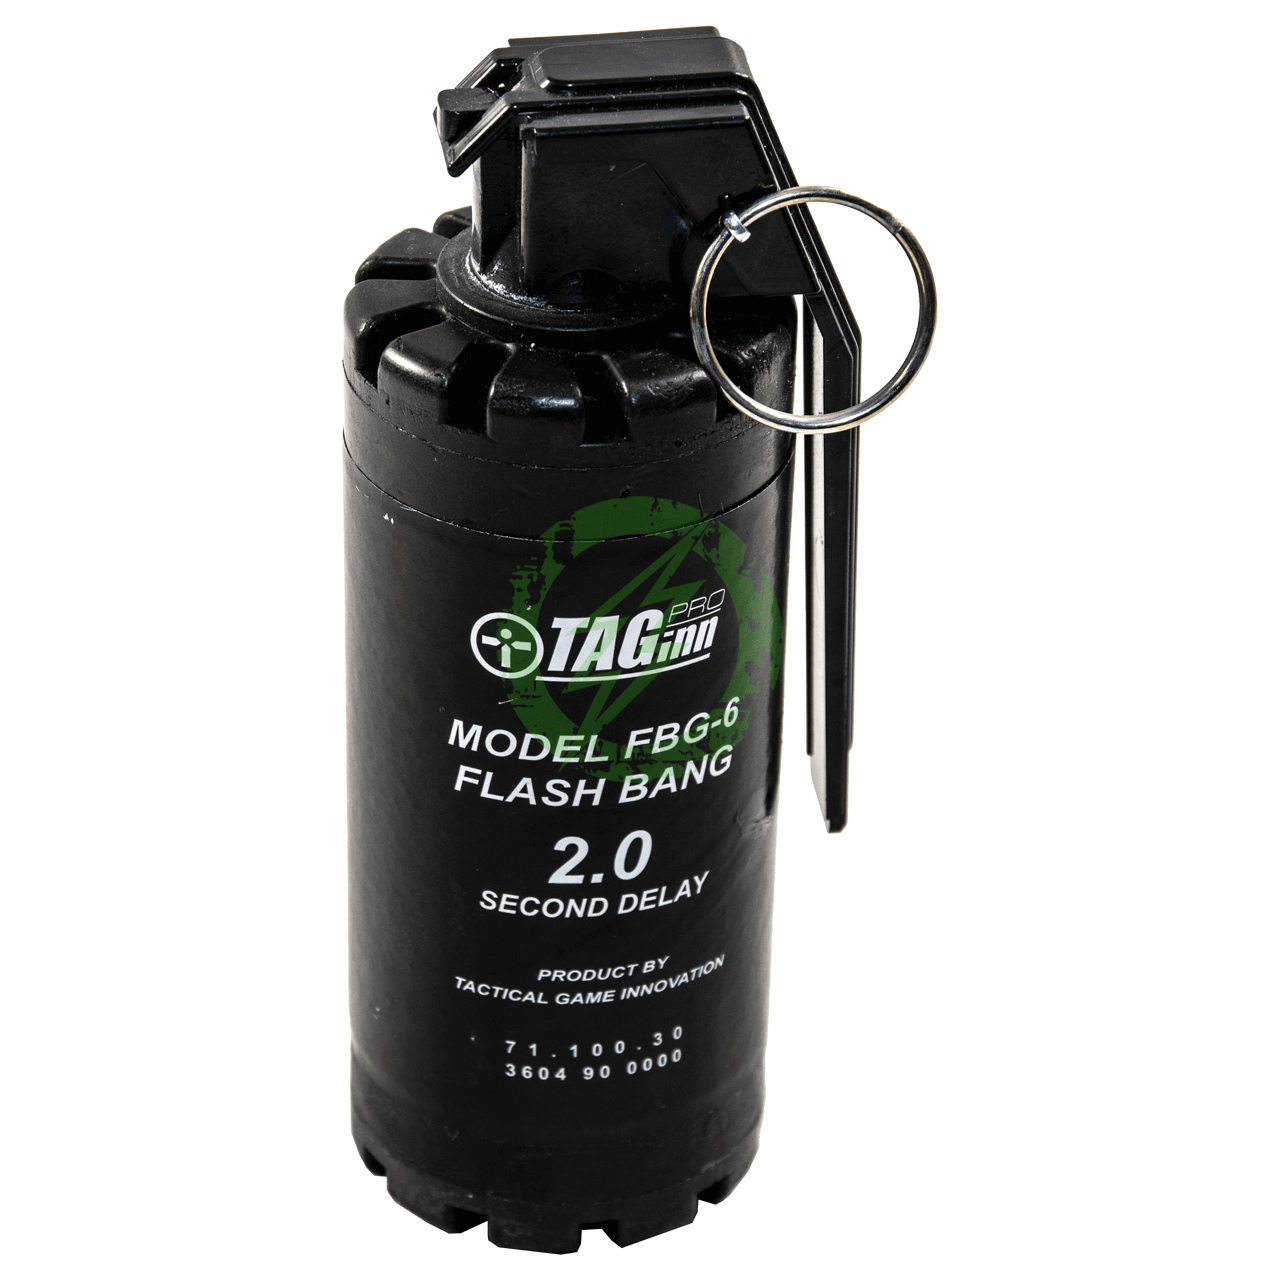 Pyro Shipped Easy TAGinn FBG-6 2 Second Sound Hand Grenade | Single